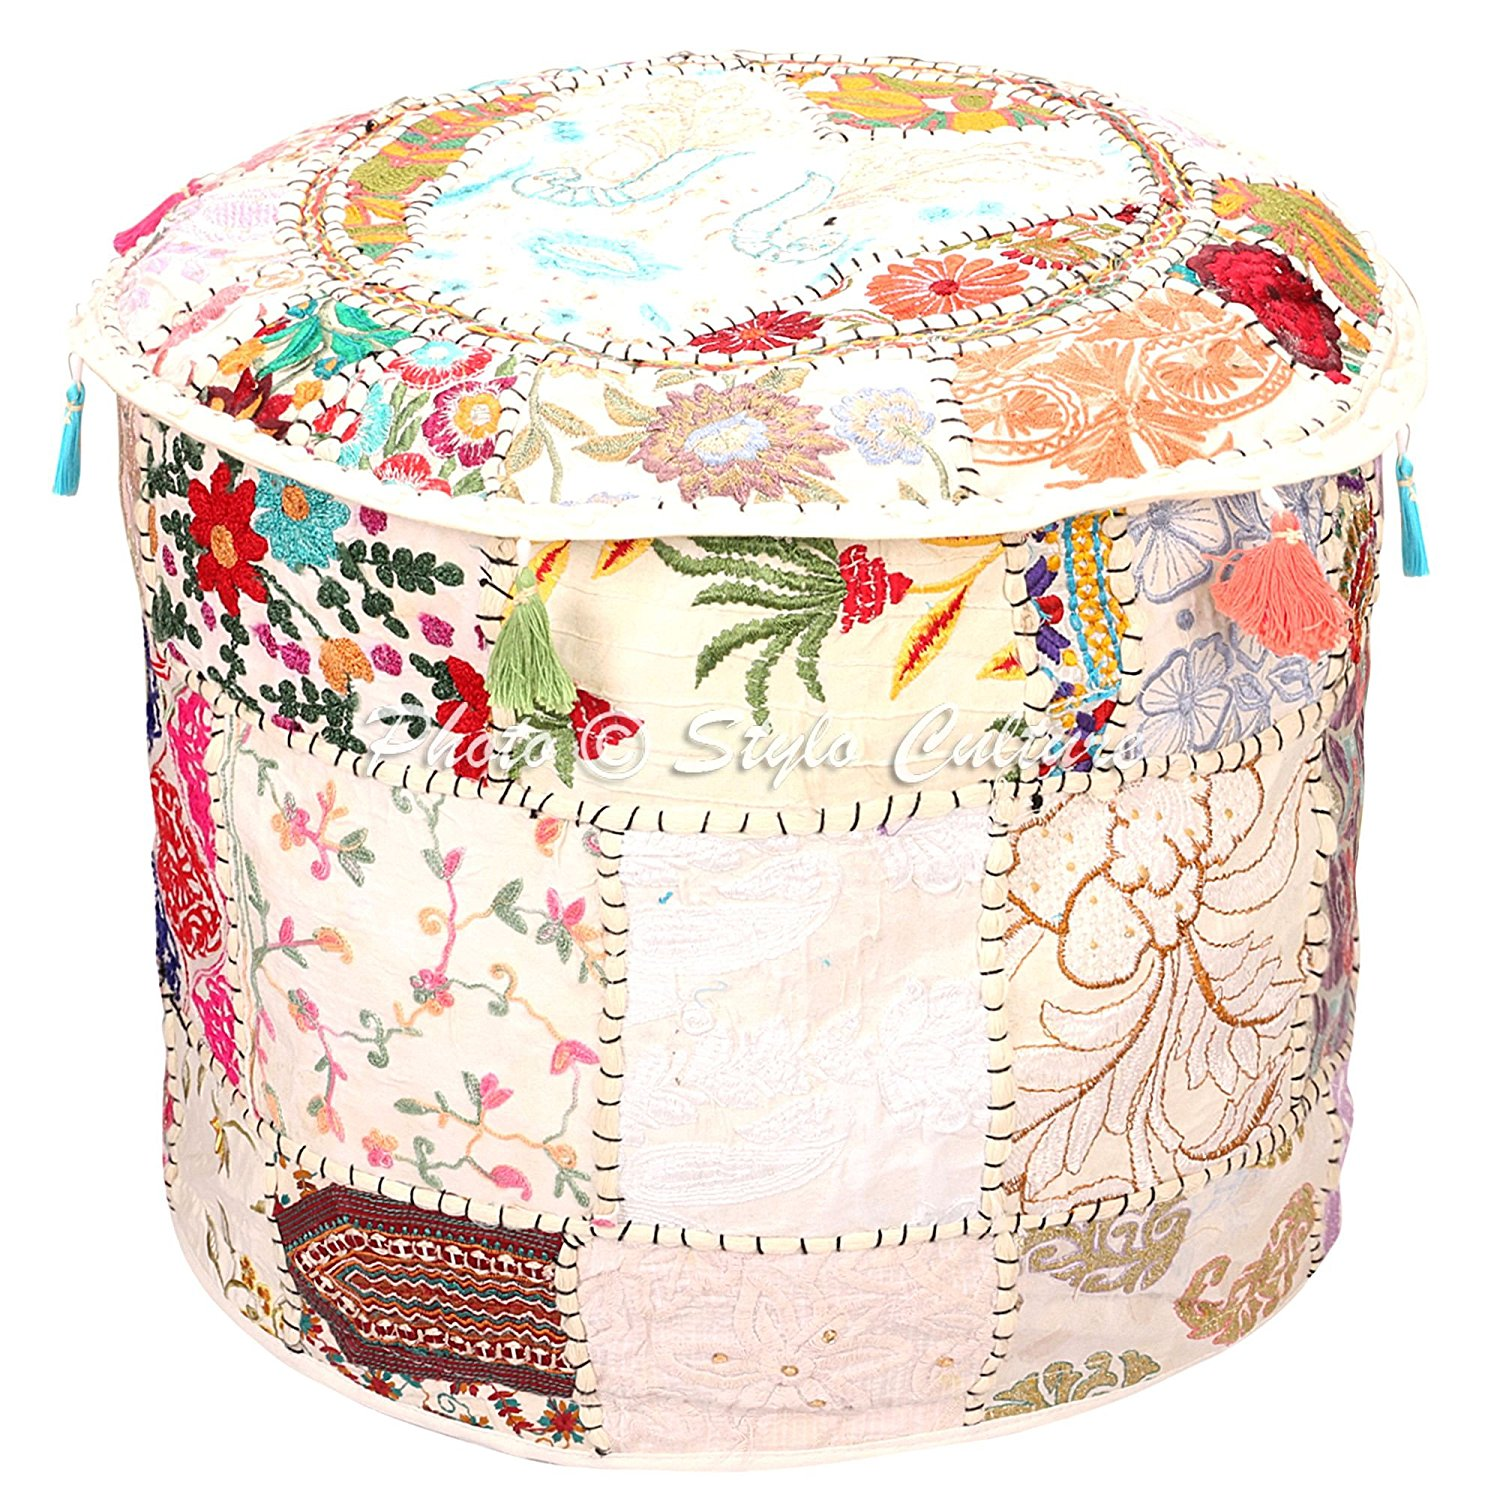 Embroidered Ottoman Stool Pouf Cover 18x18x13 Cotton Patchwork Embroidered Ottoman Stool Pouf Cover Turquoise Green Floral Hassock Pouffe Case Footstool Floor Cushion Cover Ethnic Decor,Puff Cover